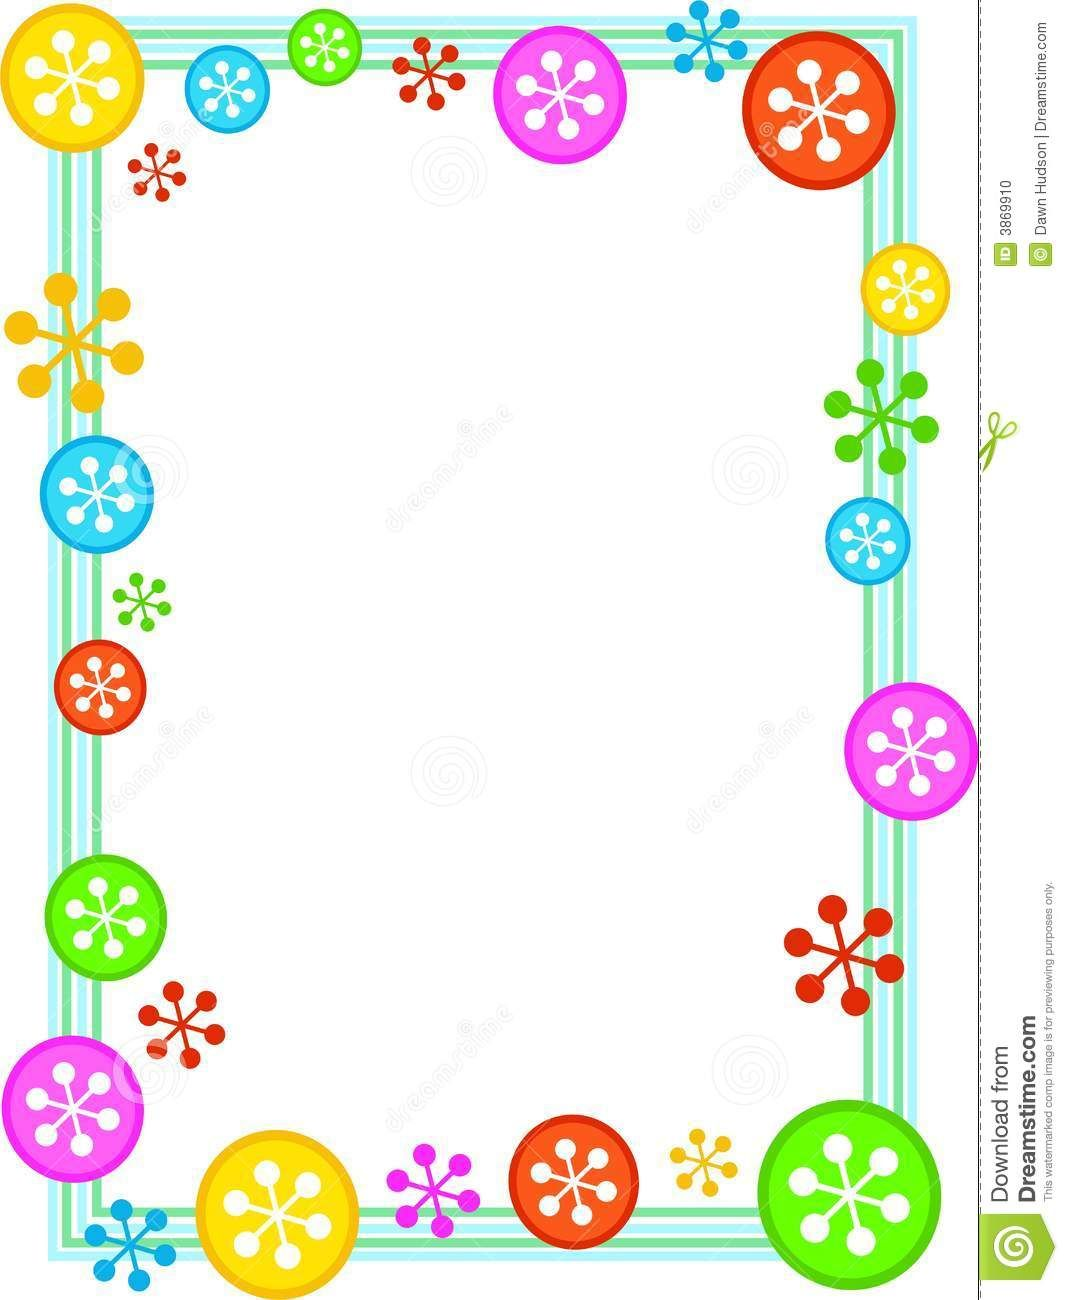 page border - Google Search | Page borders | Pinterest